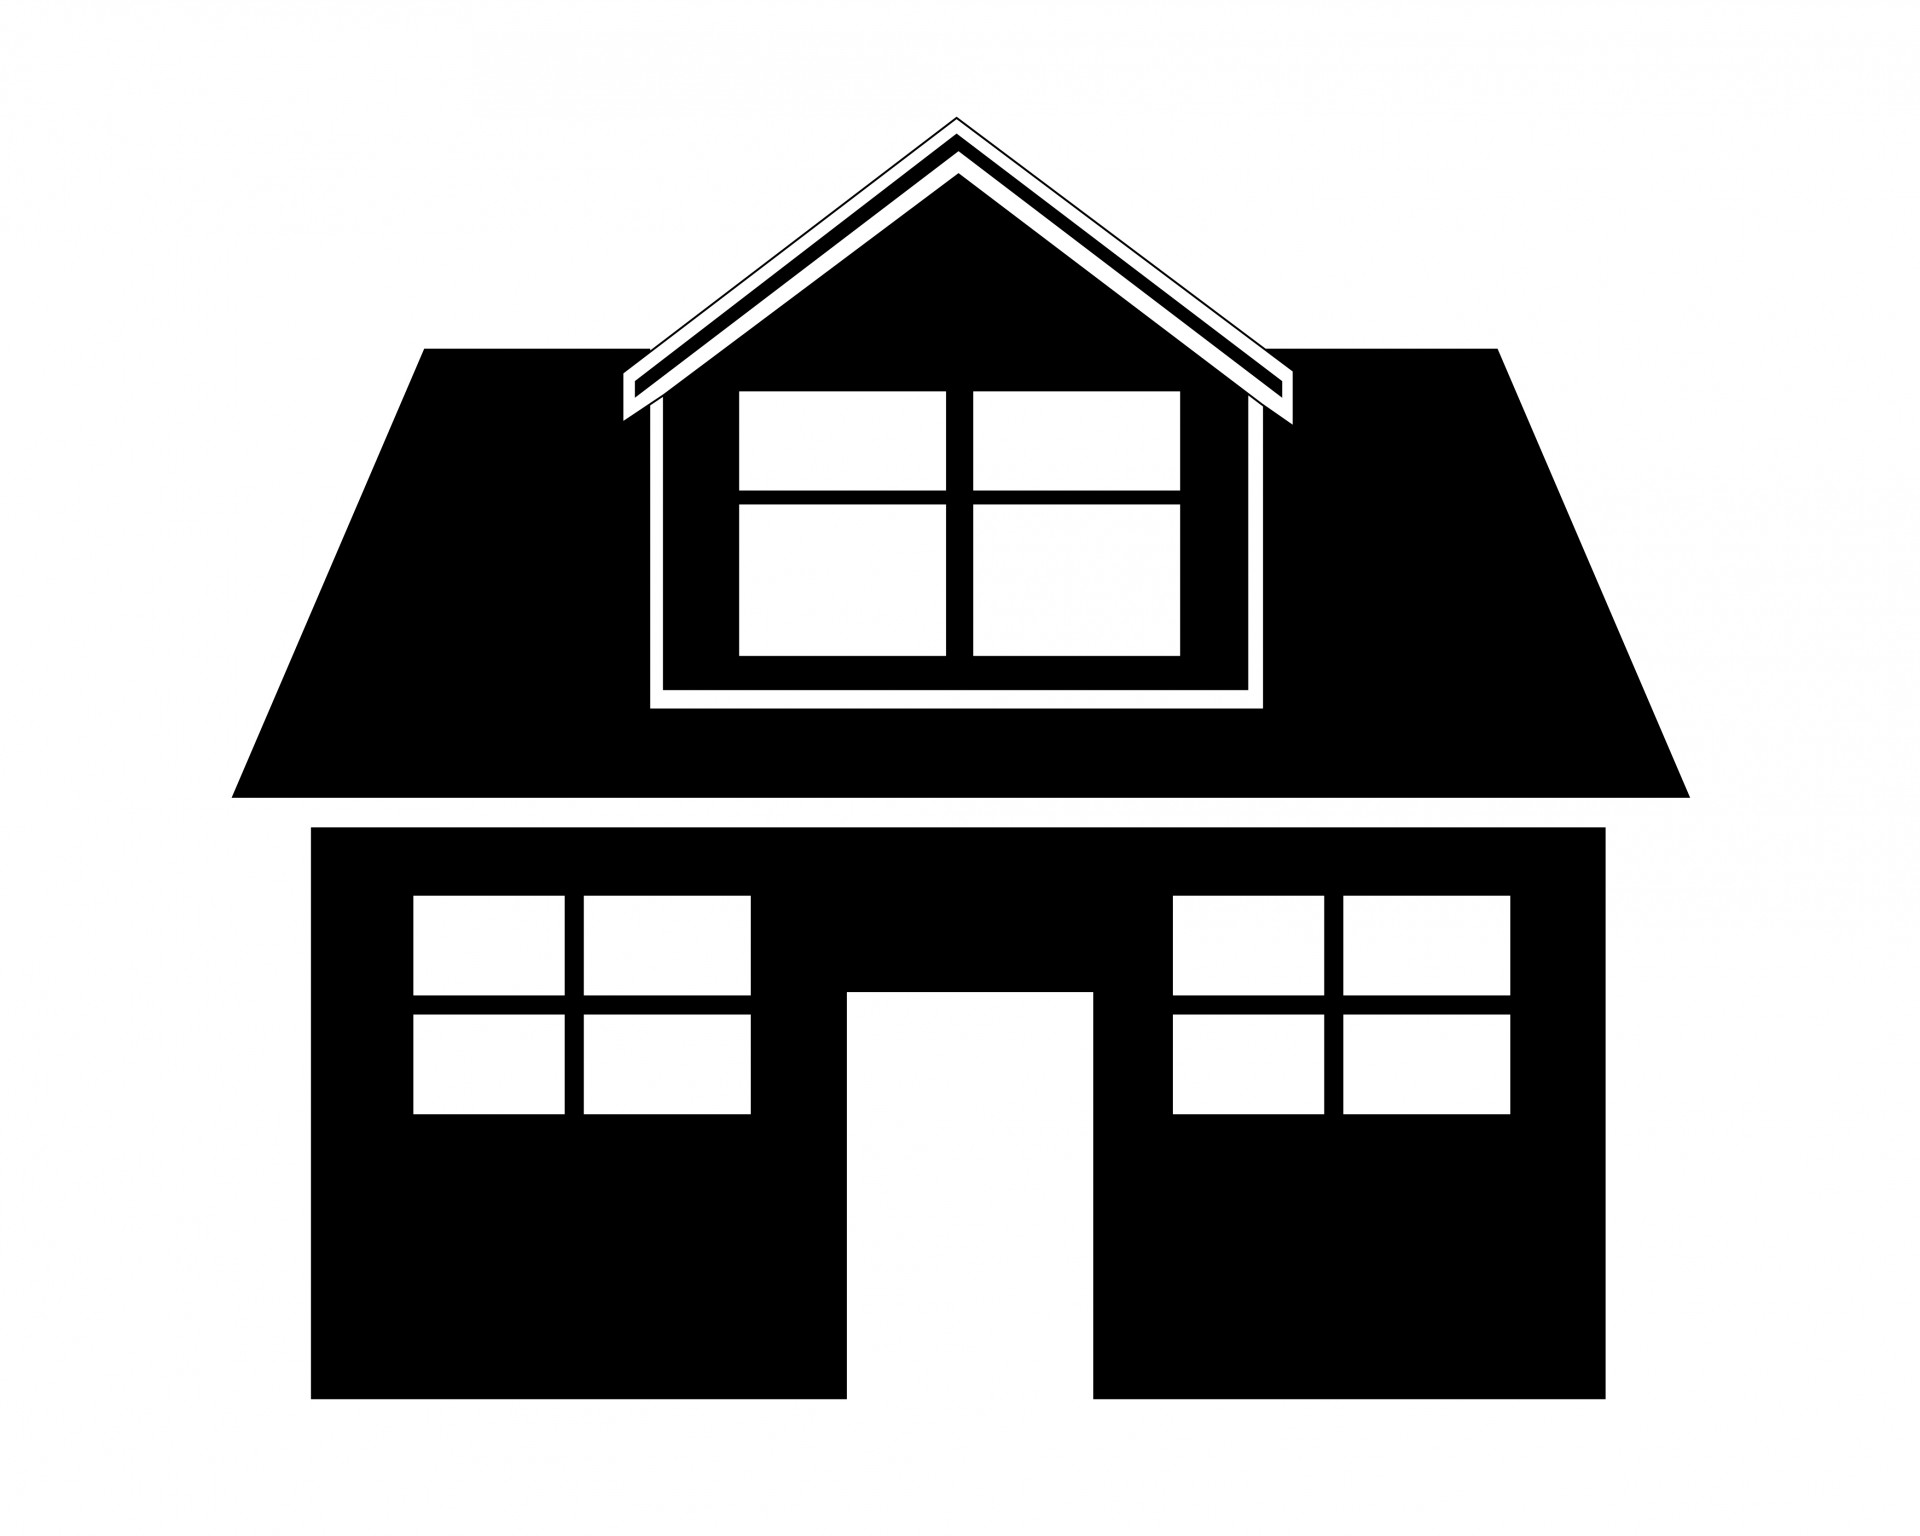 Haus cliparts graphic royalty free House Clipart Images & House Images Clip Art Images - ClipartALL.com graphic royalty free